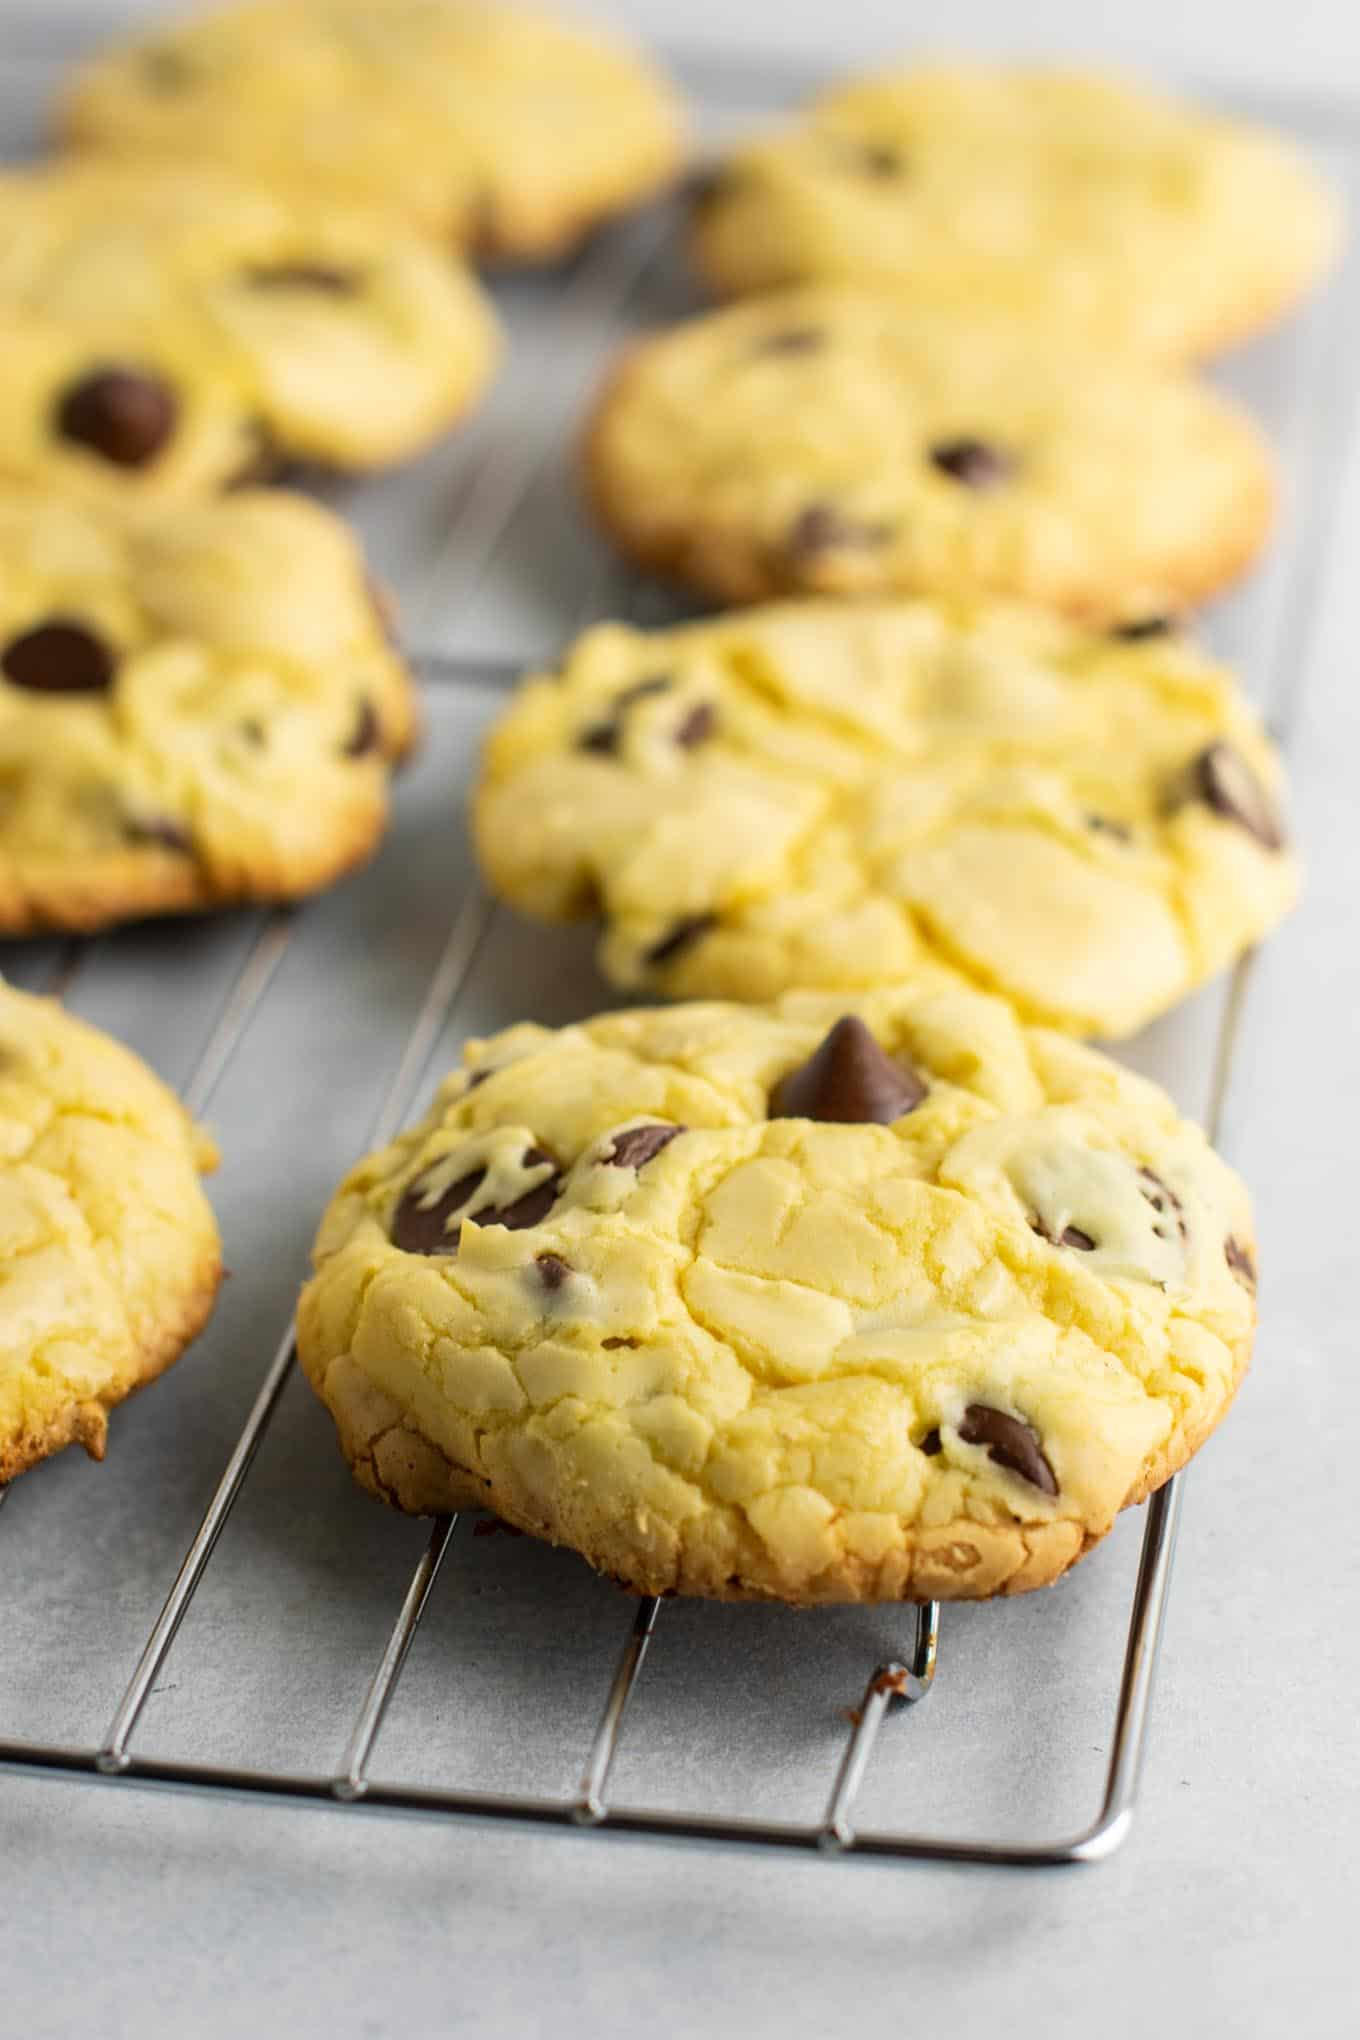 Cake mix chocolate chip cookies – all you need is 4 ingredients. Everyone loved these! #cakemix #chocolatechipcookies #dessert #easydessert #cakemixcookies